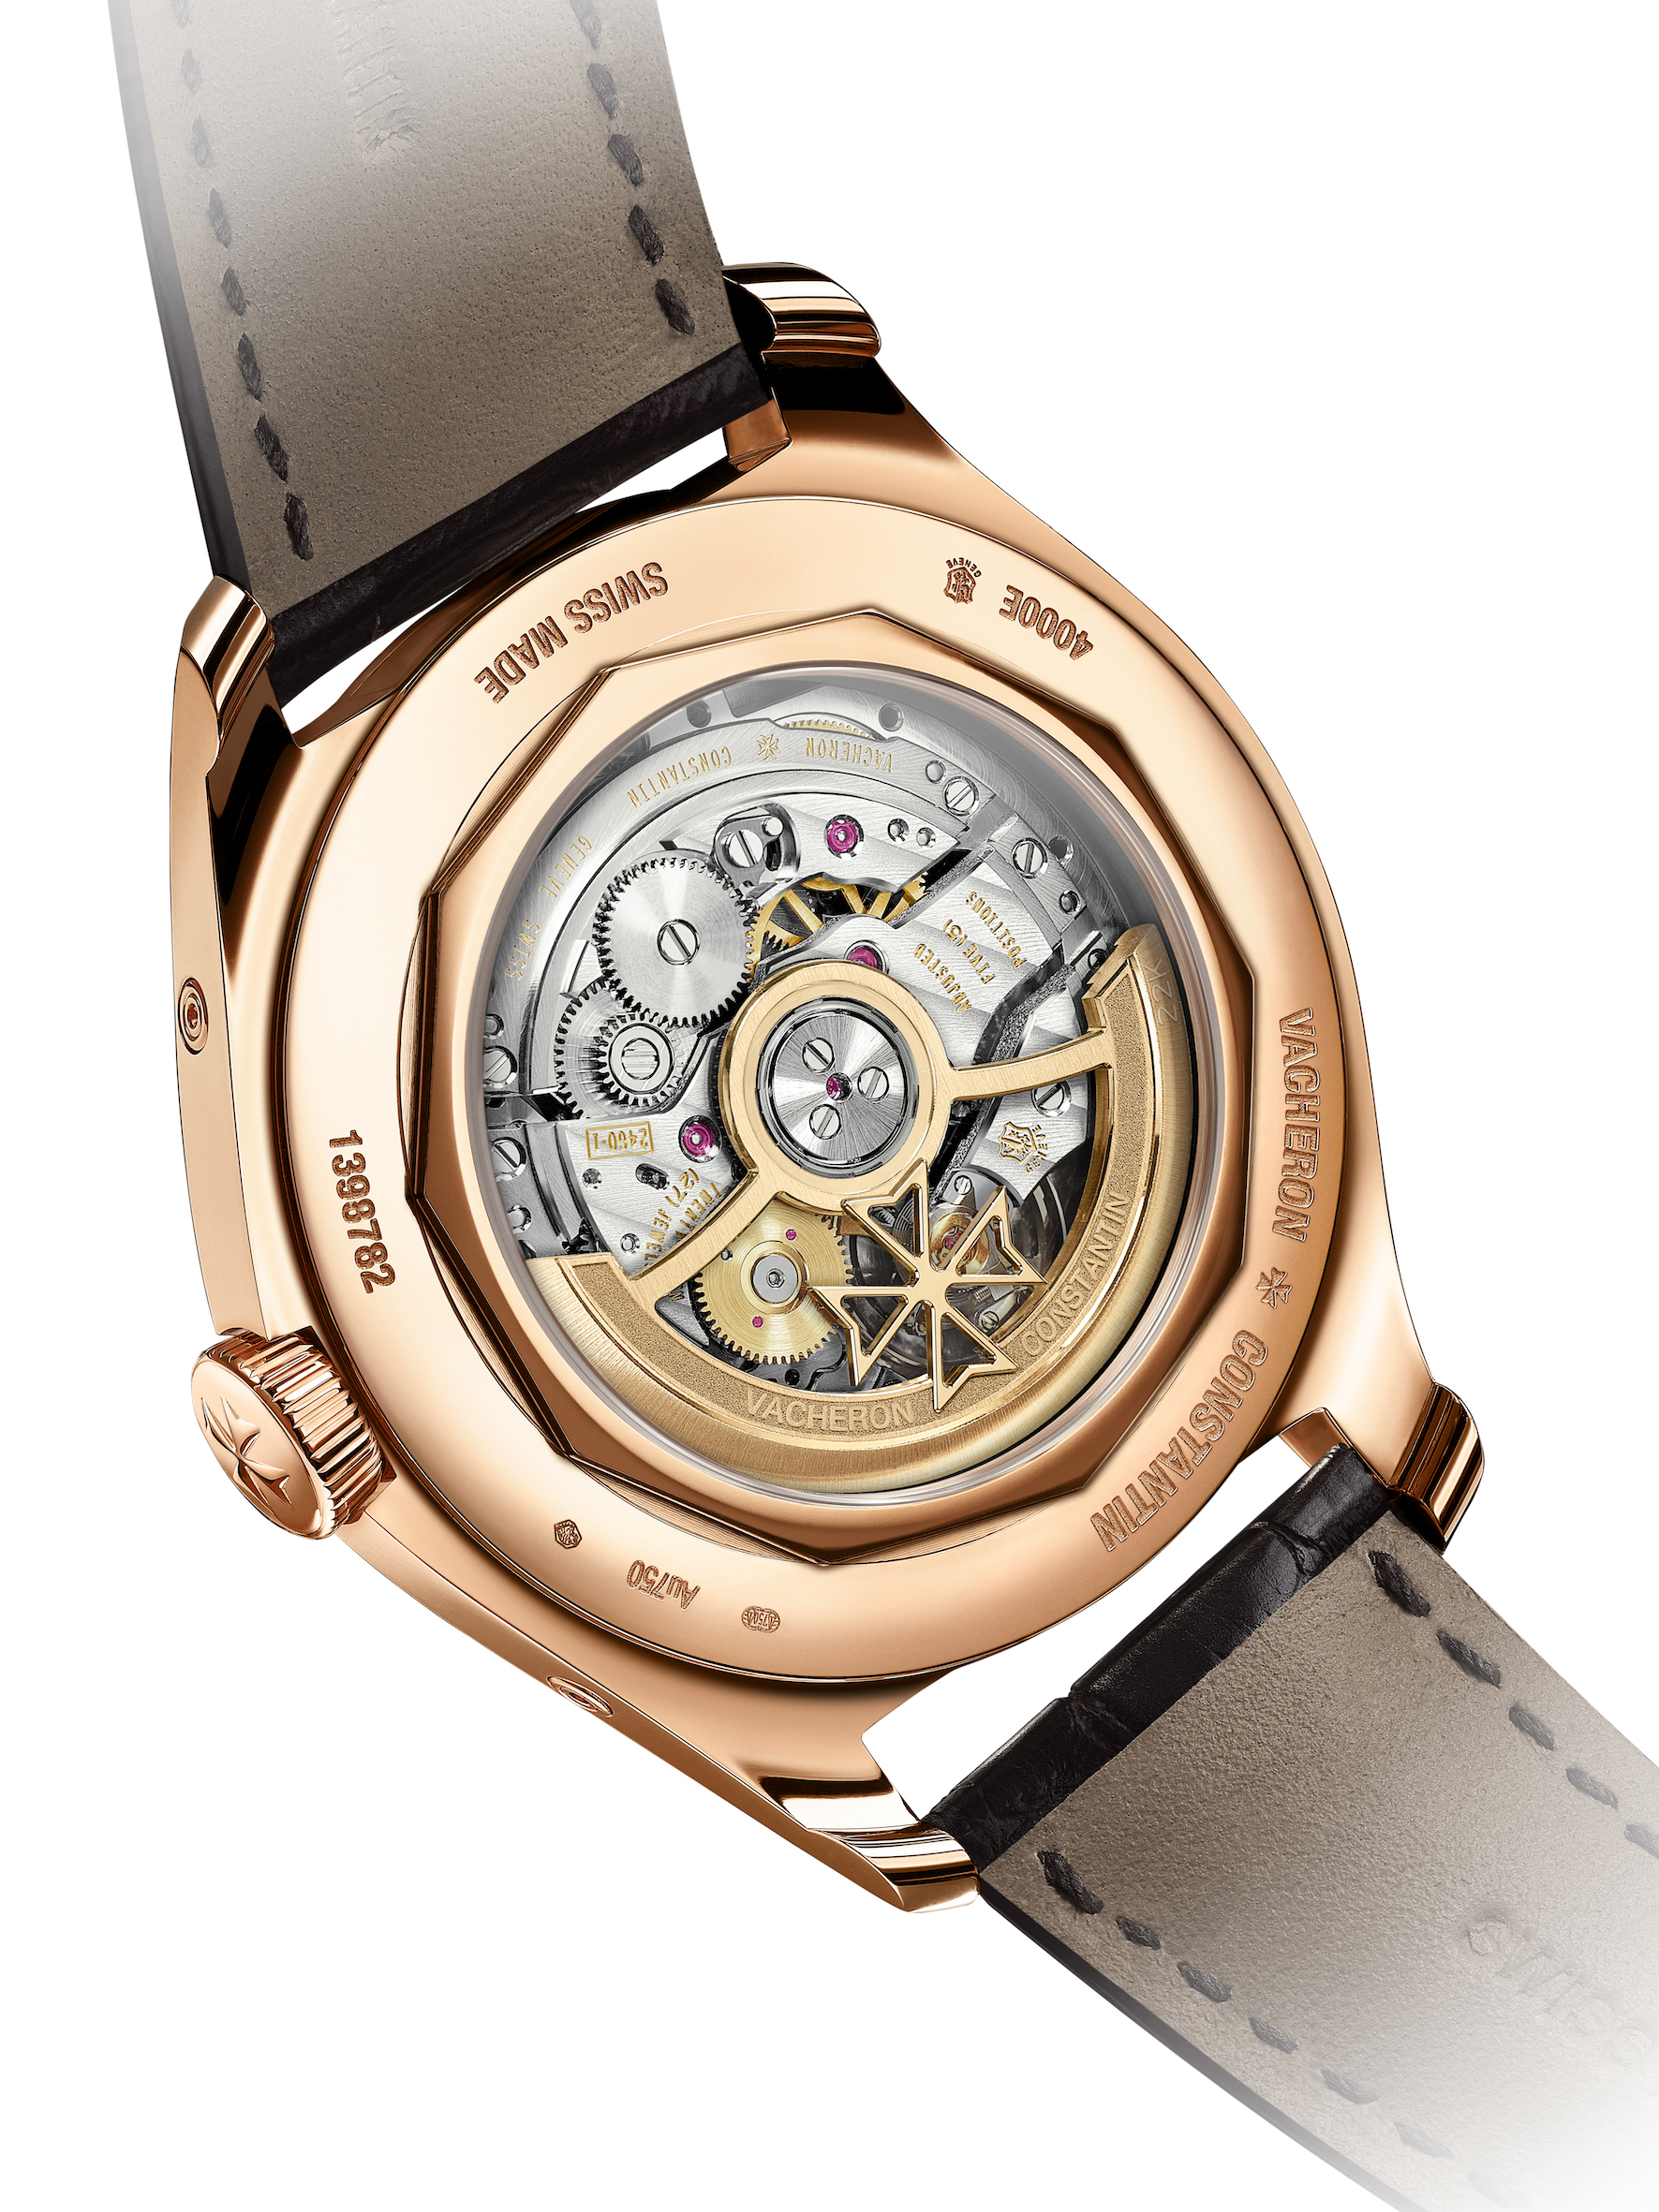 Vacheron Constantin FIFTYSIX complete calendar with precision moon phase. A 40 mm-diameter case in steel or 18 carats 5N pink gold; gold Arabic numerals, hour- markers and hours & minutes hands; alligator leather strap with steel folding clasp or pink gold pin buckle depending on the model.